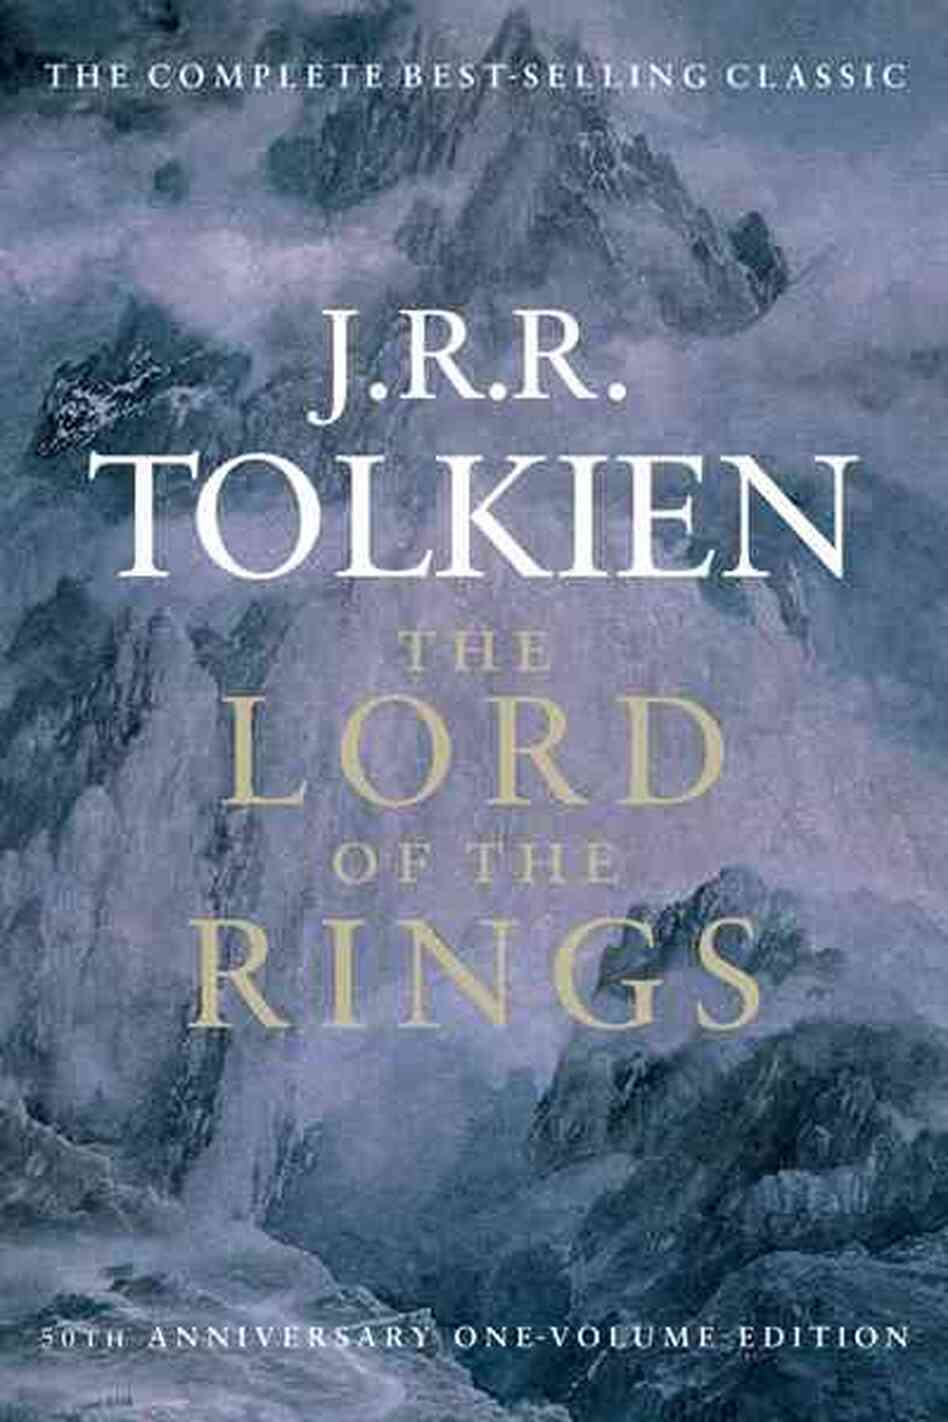 The Lord Of The Rings : NPR